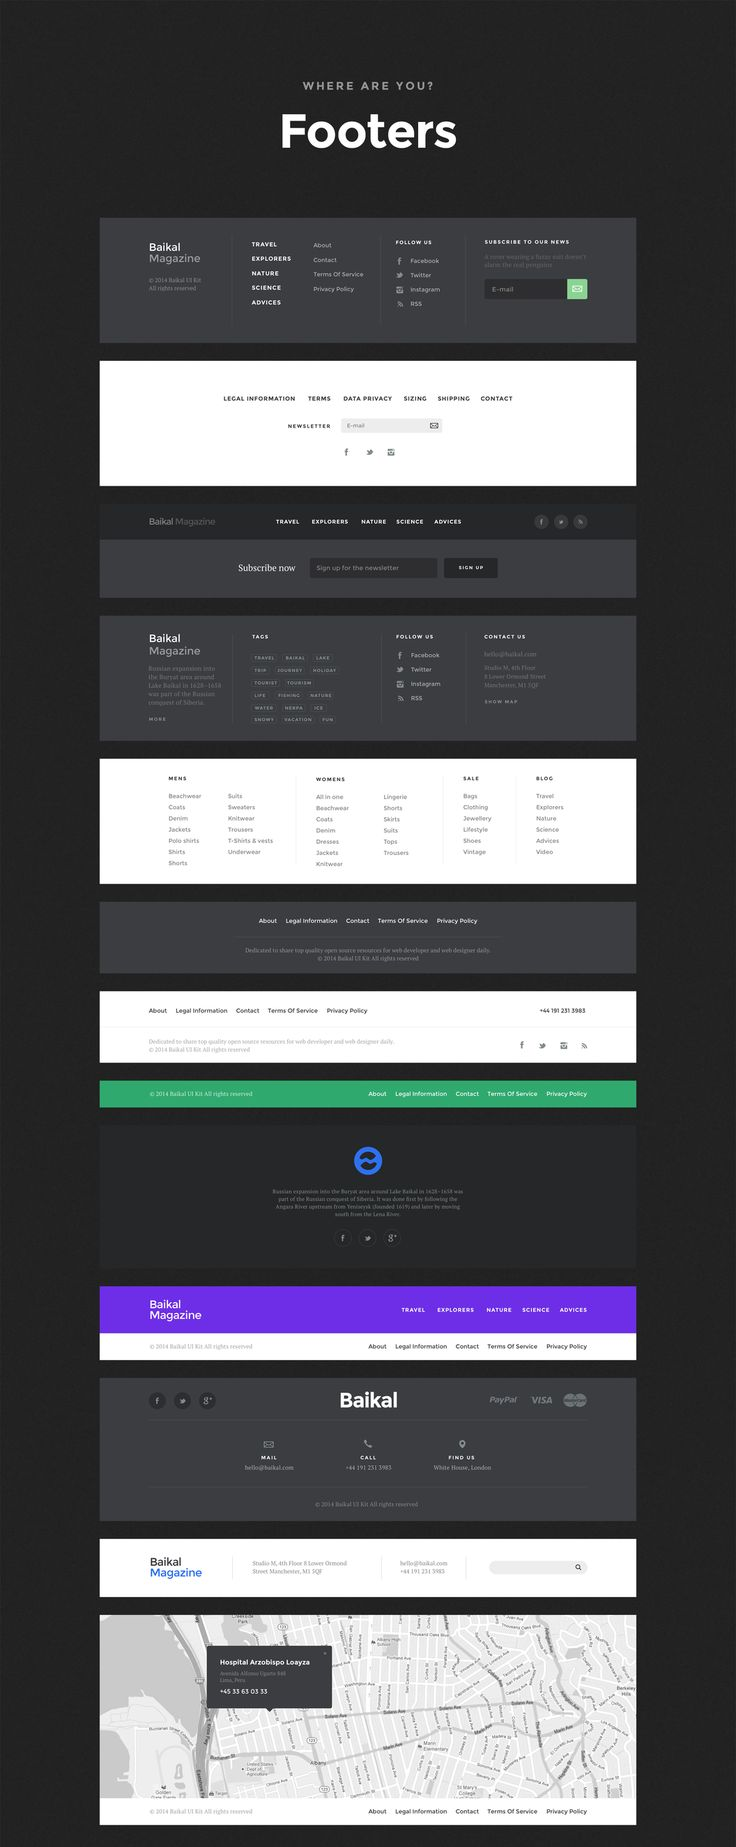 Baikal UI kit – footers